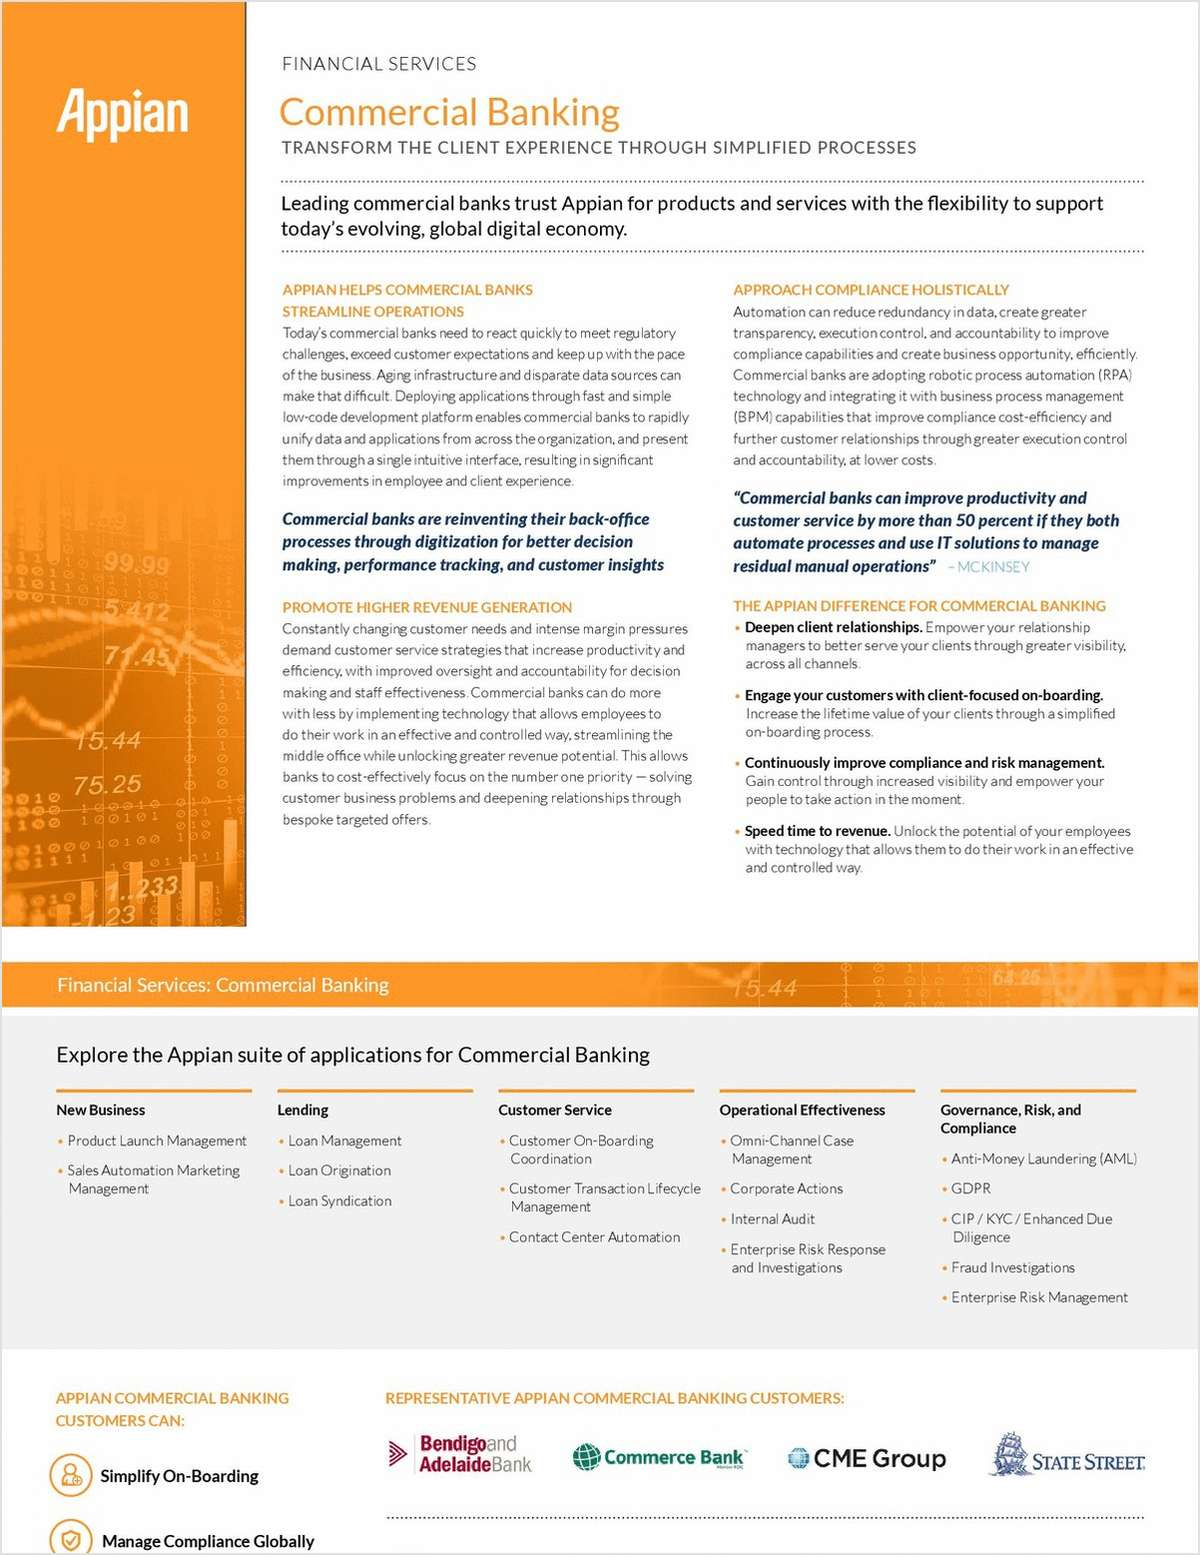 Appian for Commercial Banking